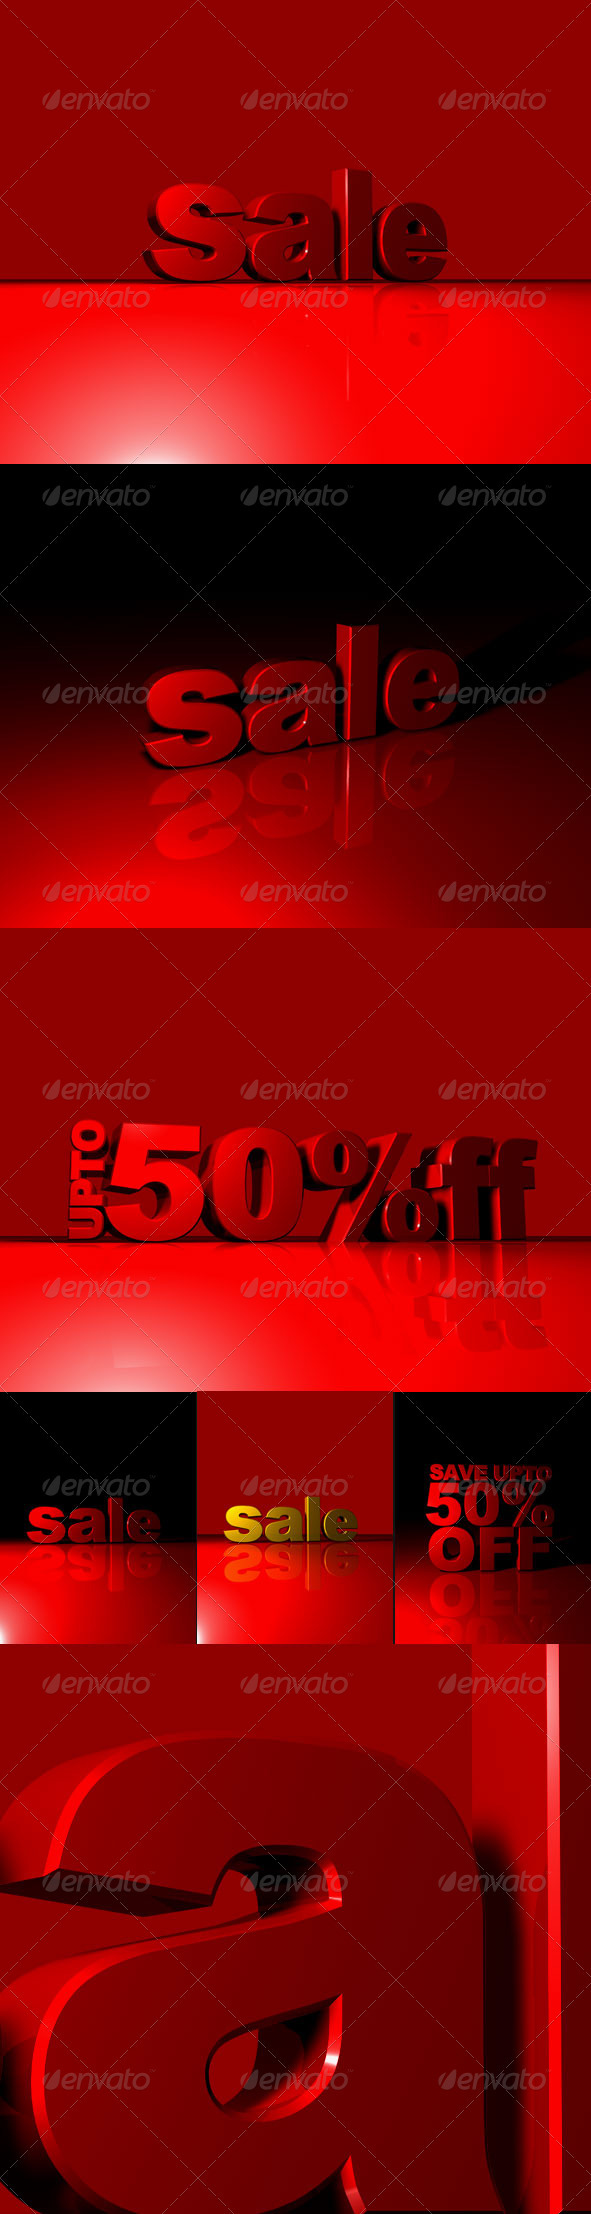 3d Sale and Discount - 3D Backgrounds